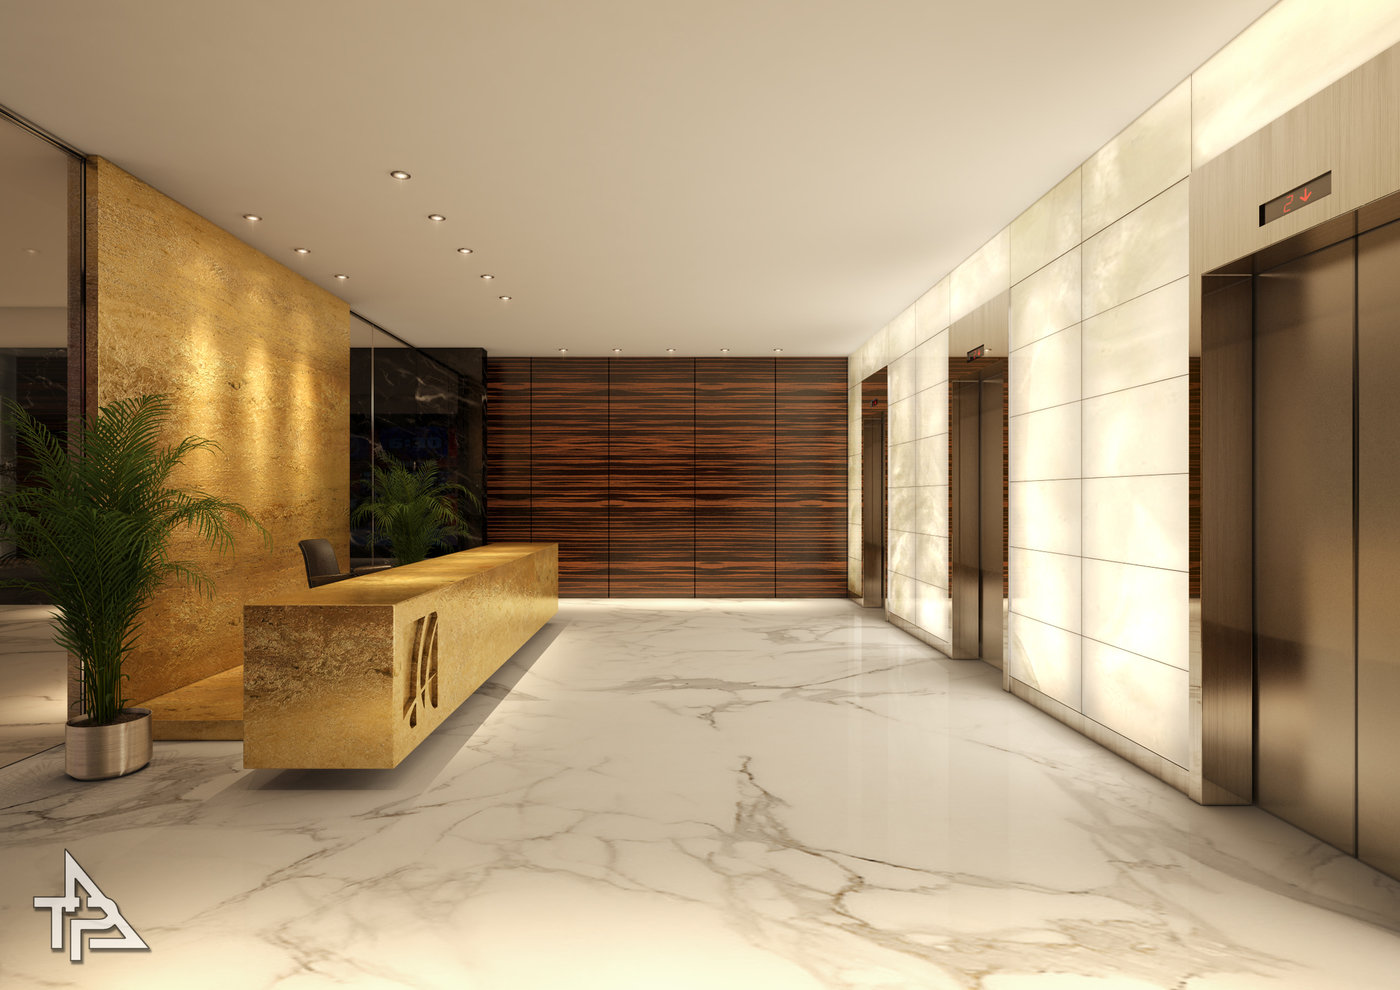 Travertine Elevator Interiors Psoriasisguru Com